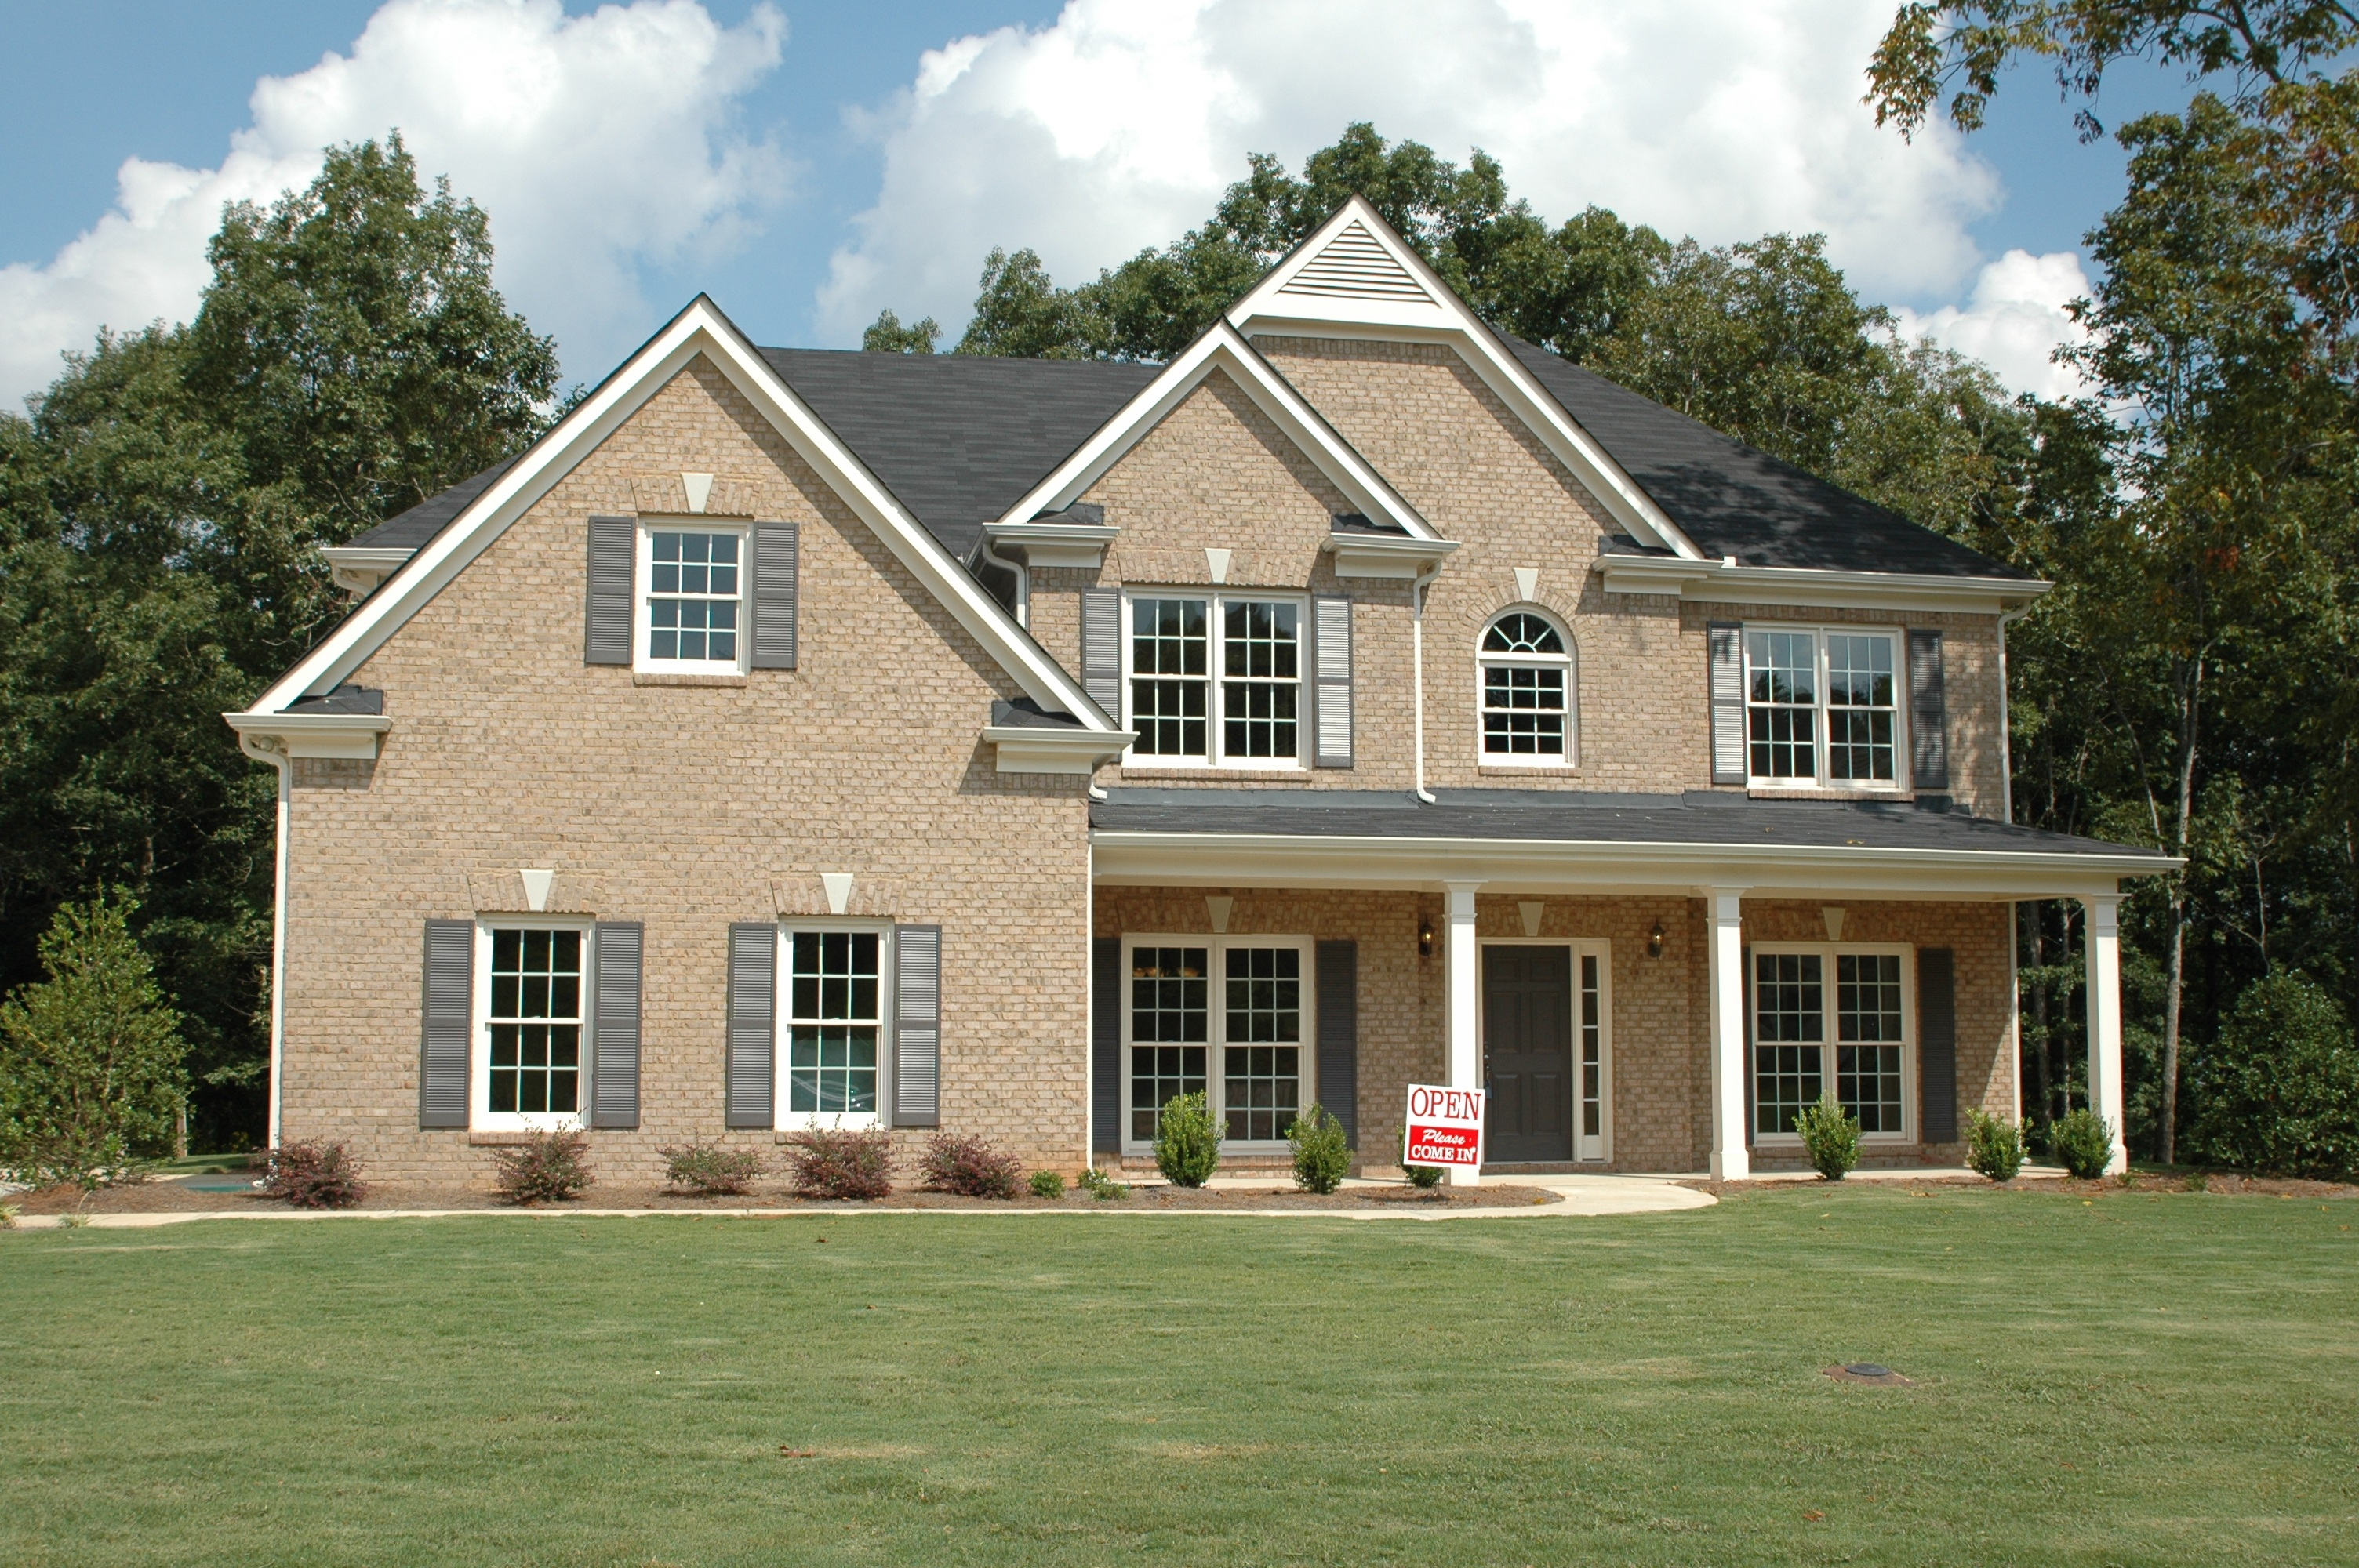 Single Family Home Construction Pro Forma for Home Builders | A CRE